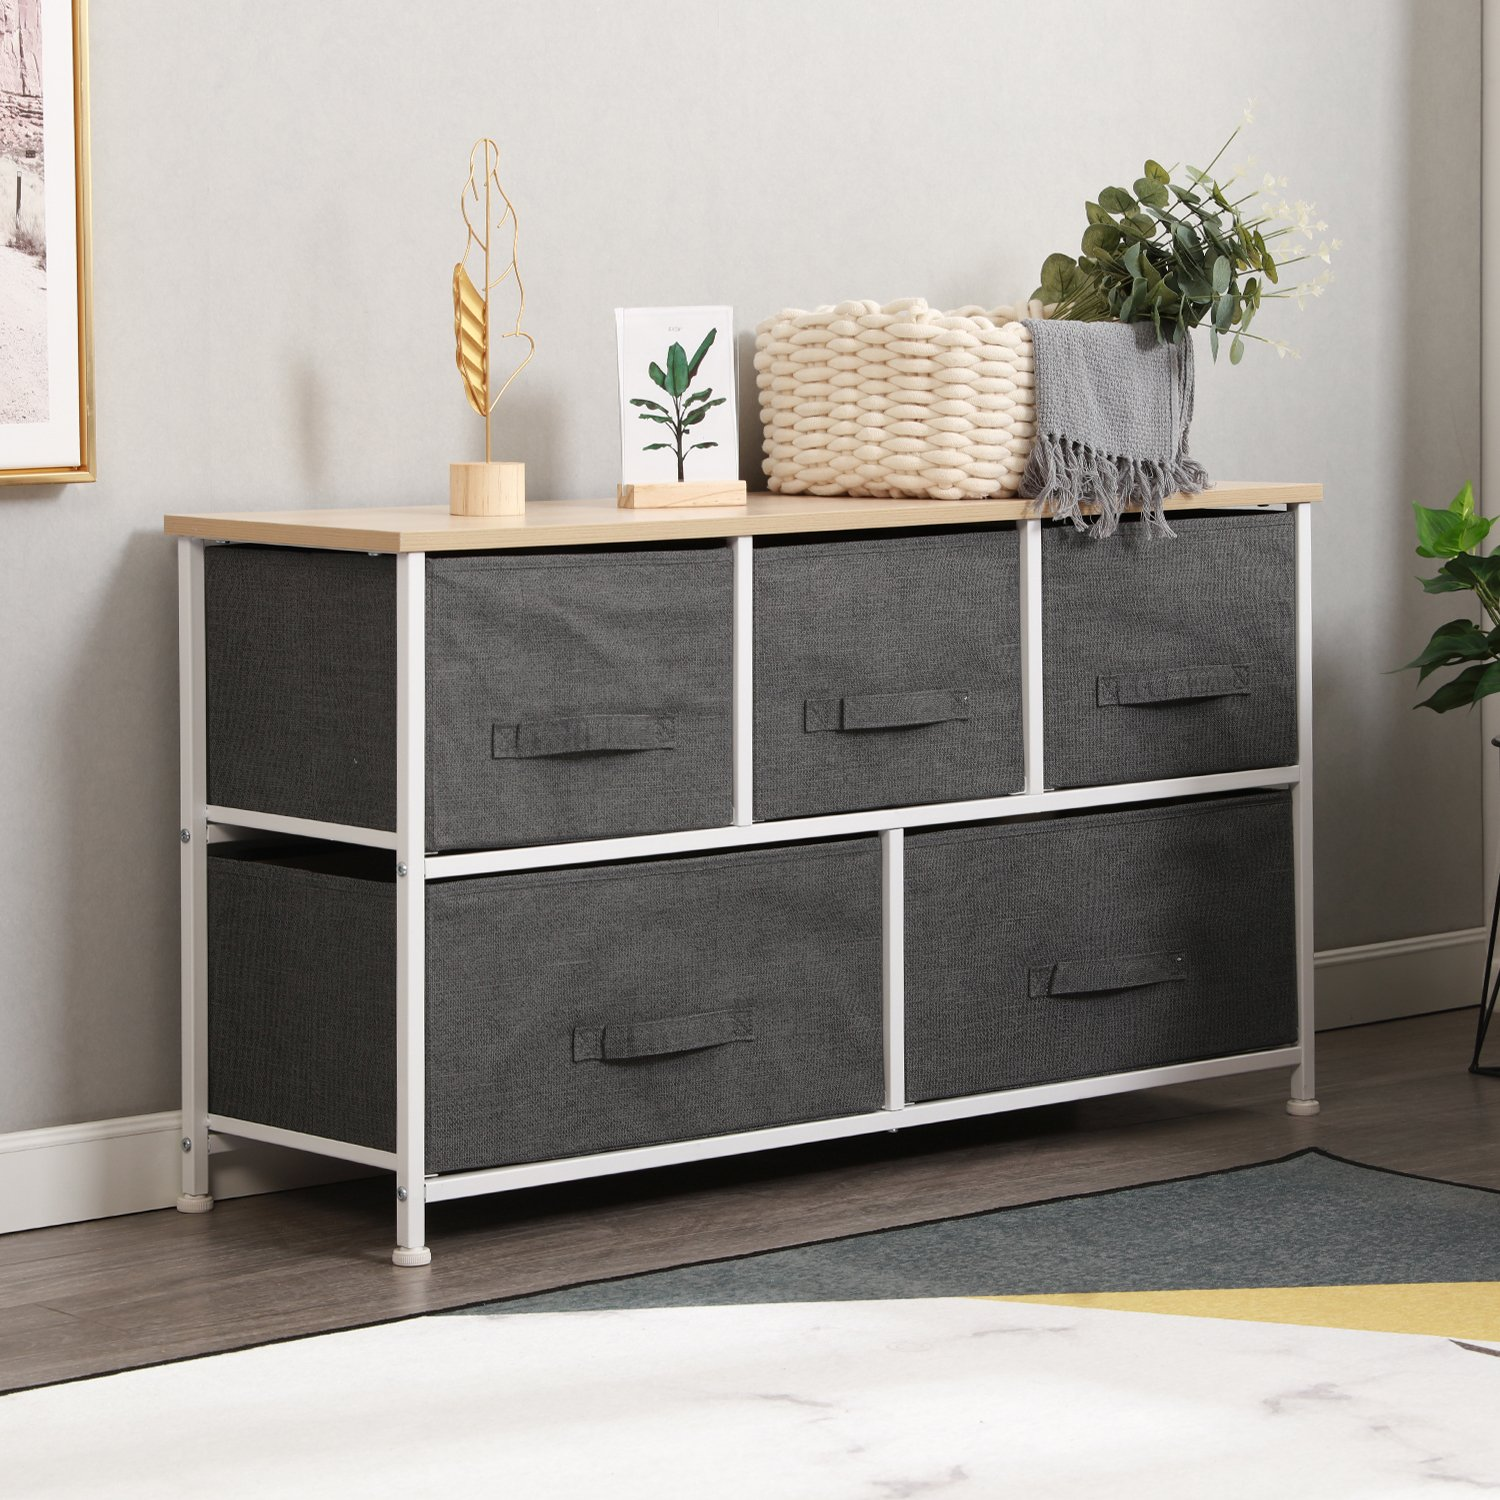 sogesfurniture Wide Dresser Storage Tower - Sturdy Steel Frame, Wood Top, Easy Pull Fabric Bins Metal Frame with Fabric Bin, Organizer Unit for Bedroom, 5 Drawers, Gray BHUS-106-GY